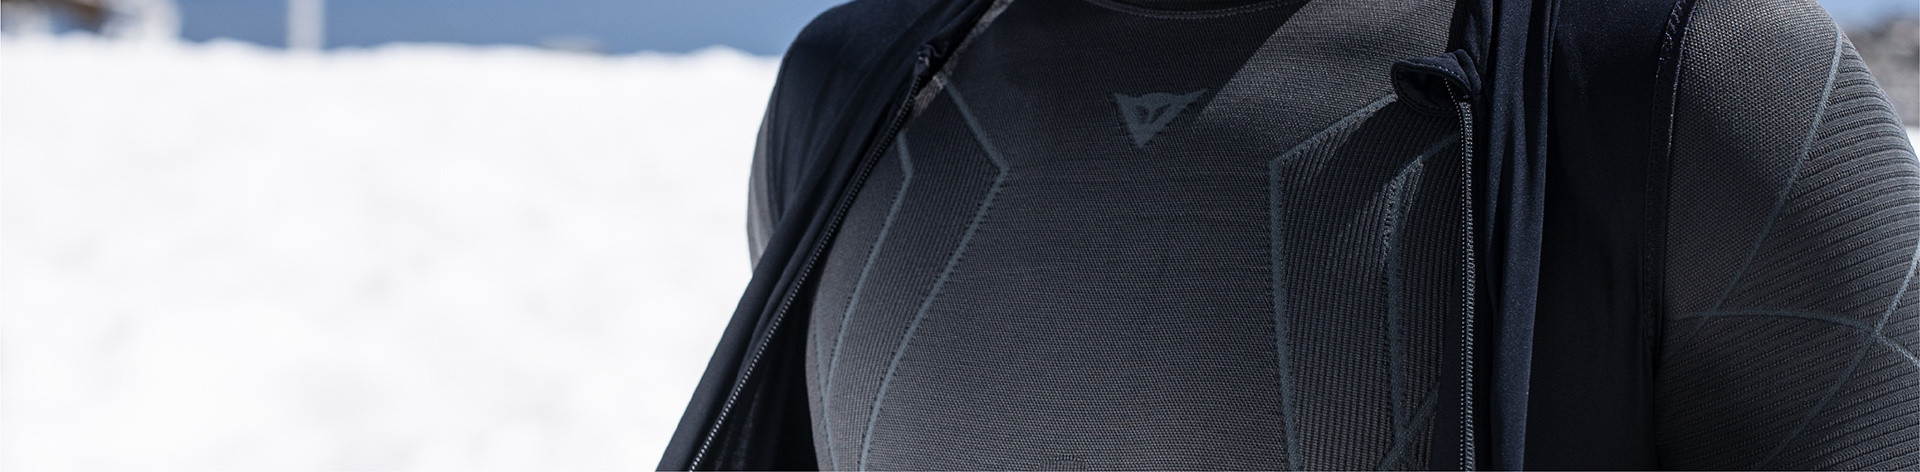 Dainese Winter Sports termical layers